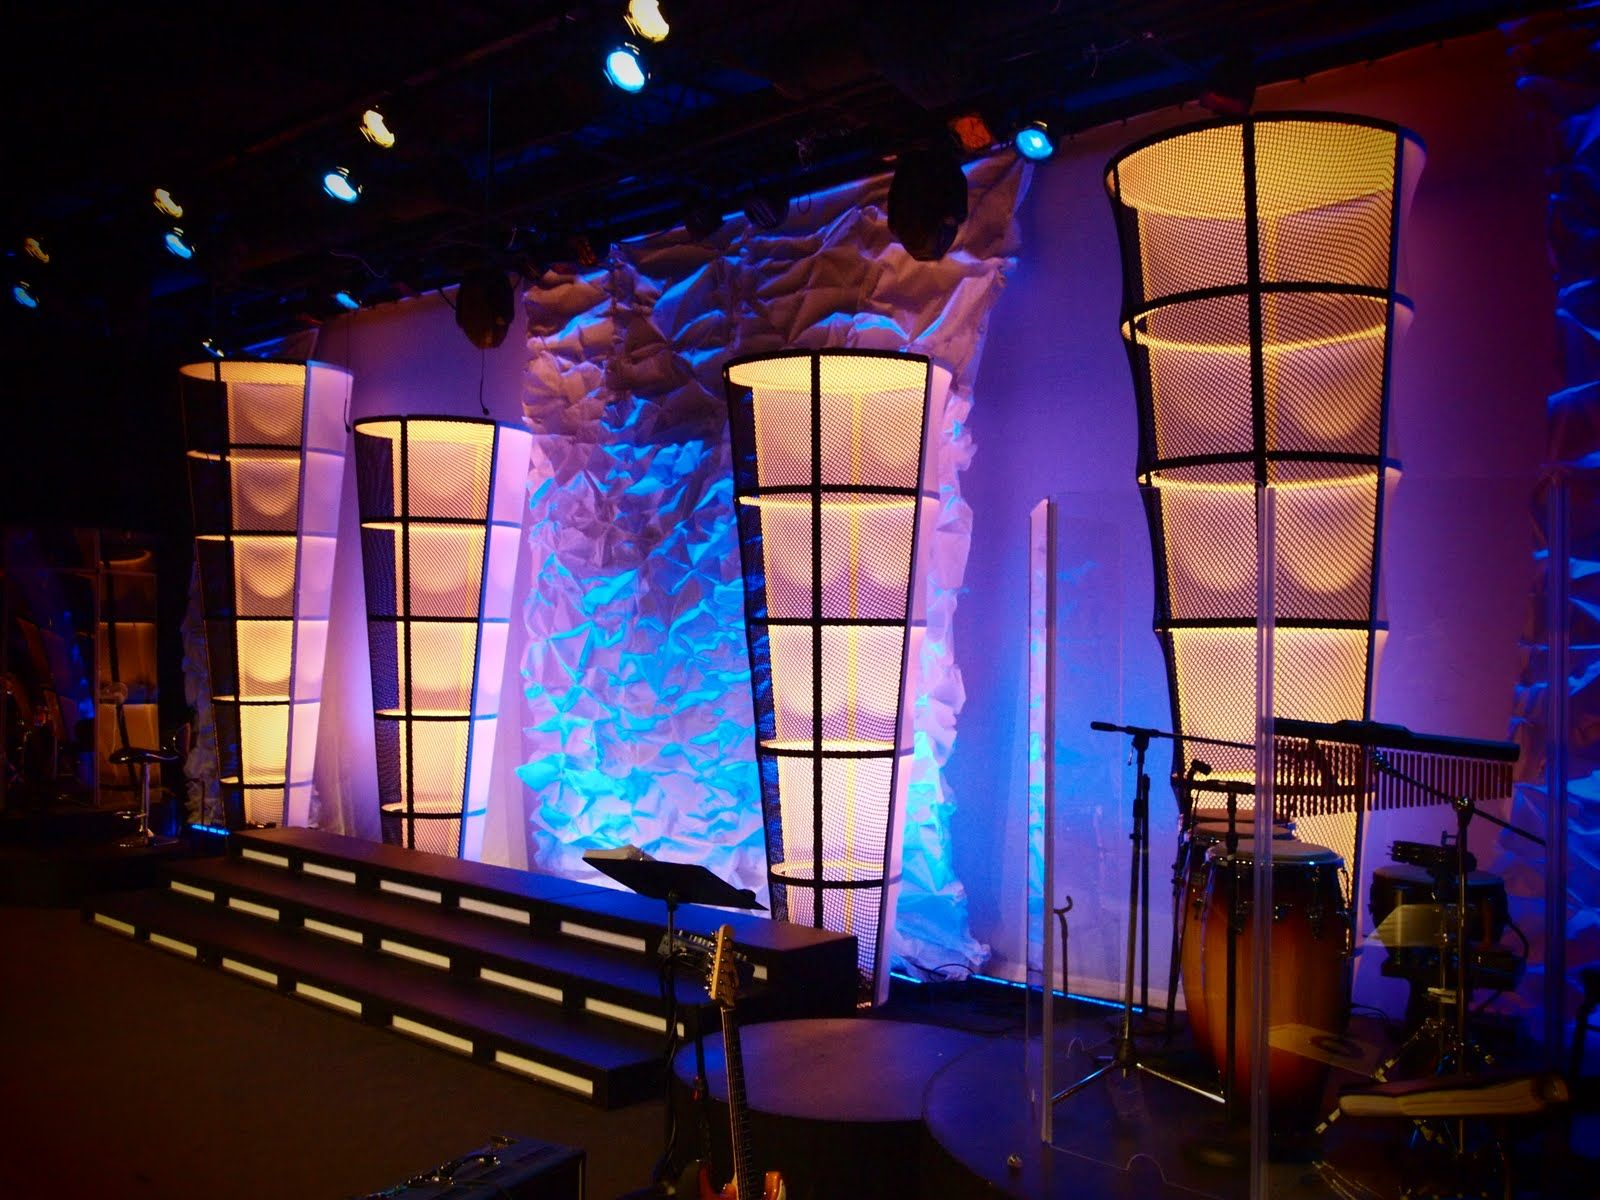 light boxes church stage ideas pinterest stage design box and stage - Church Stage Design Ideas